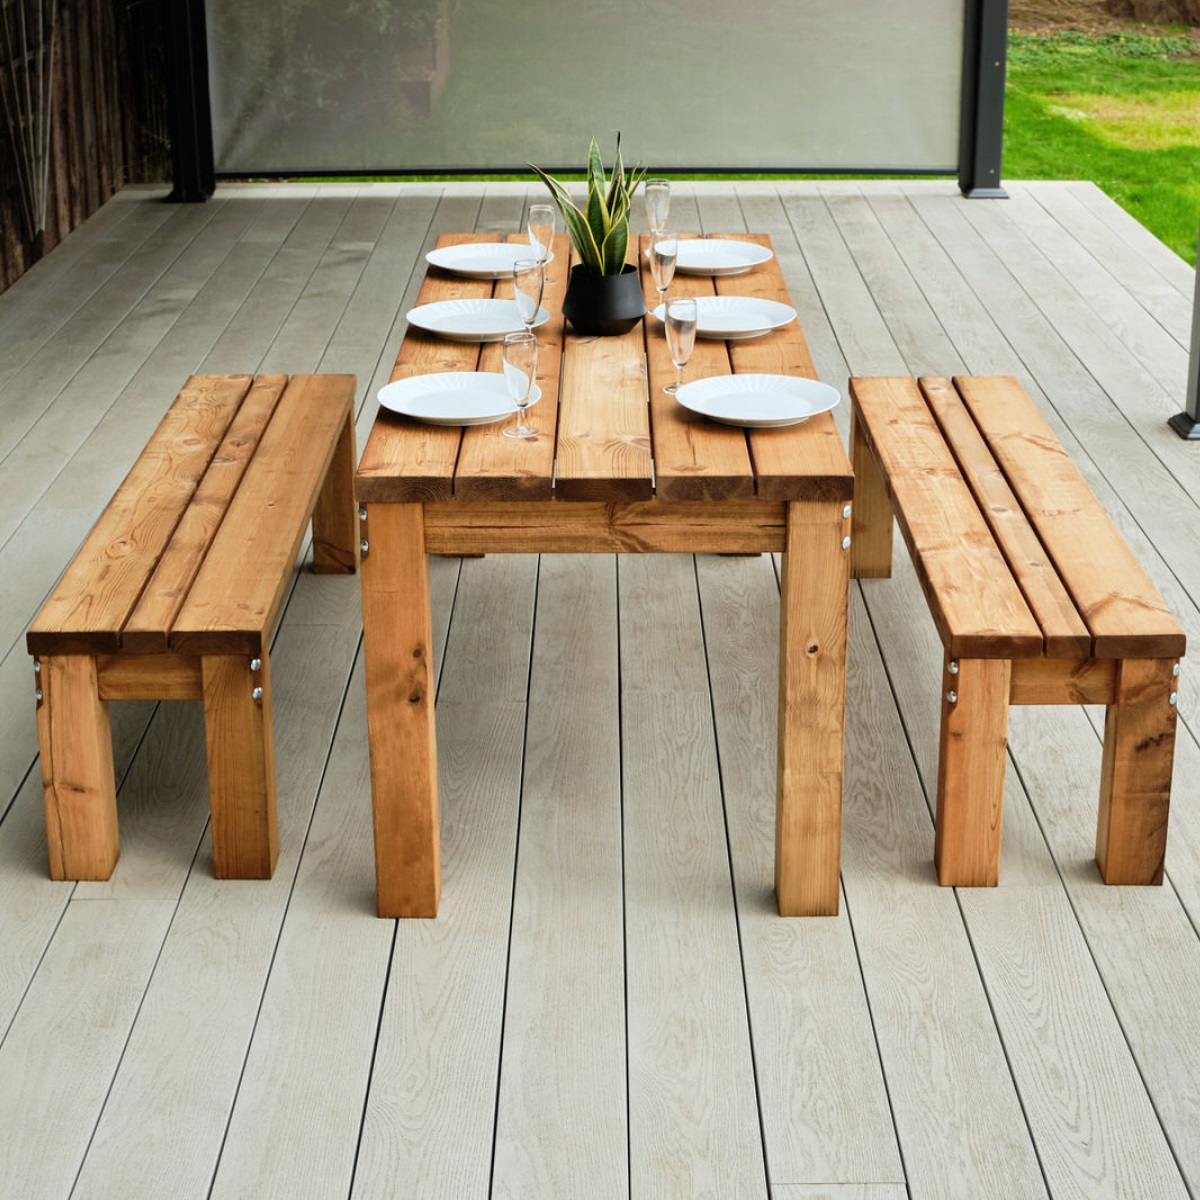 A chunky wooden rectangular outdoor dining table and 2 benches end of view on a grey deck with table set for dinner